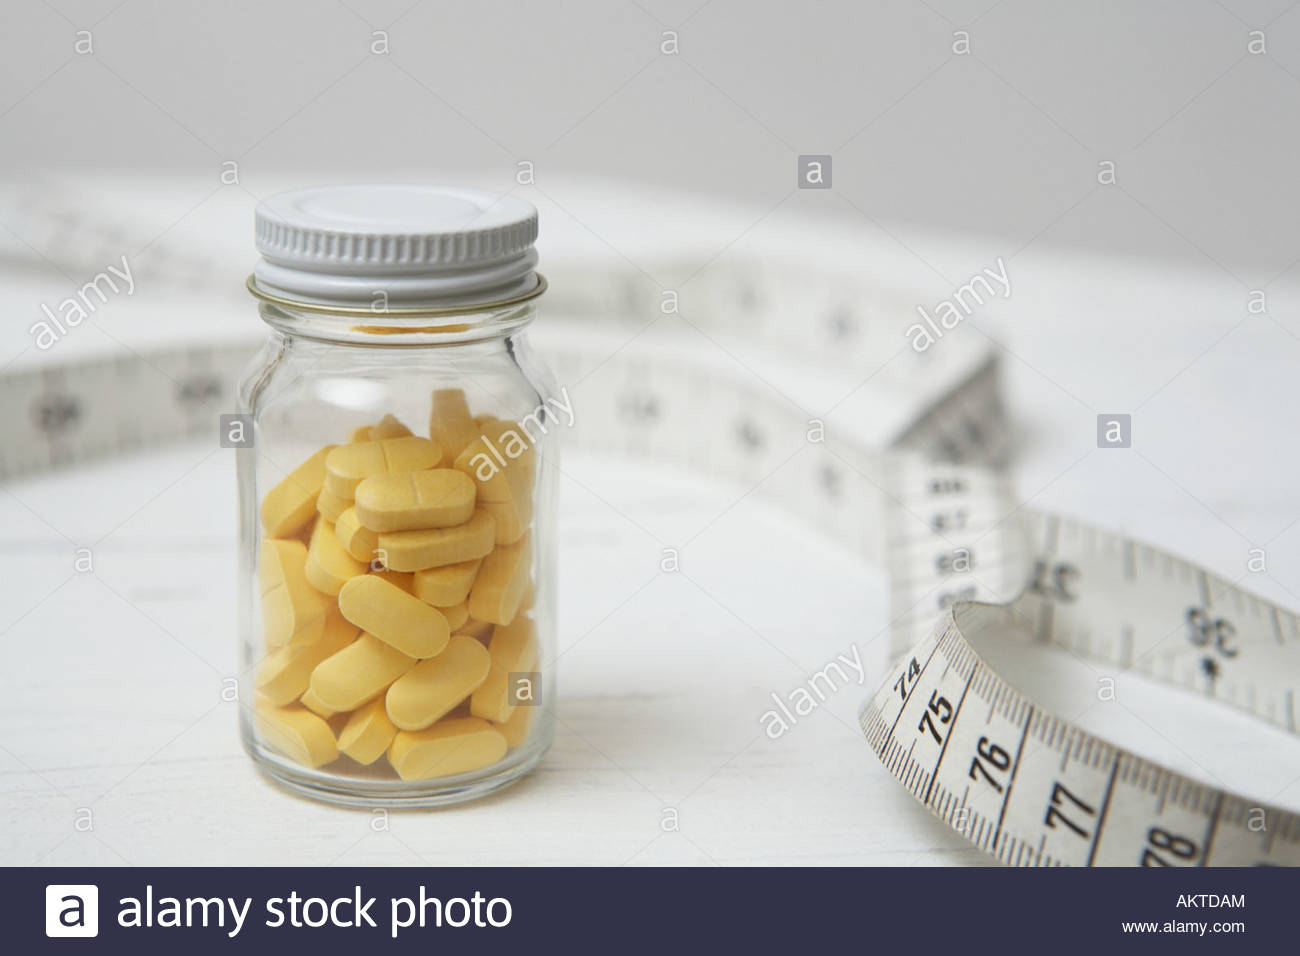 Tablets and a tape measure - Stock Image